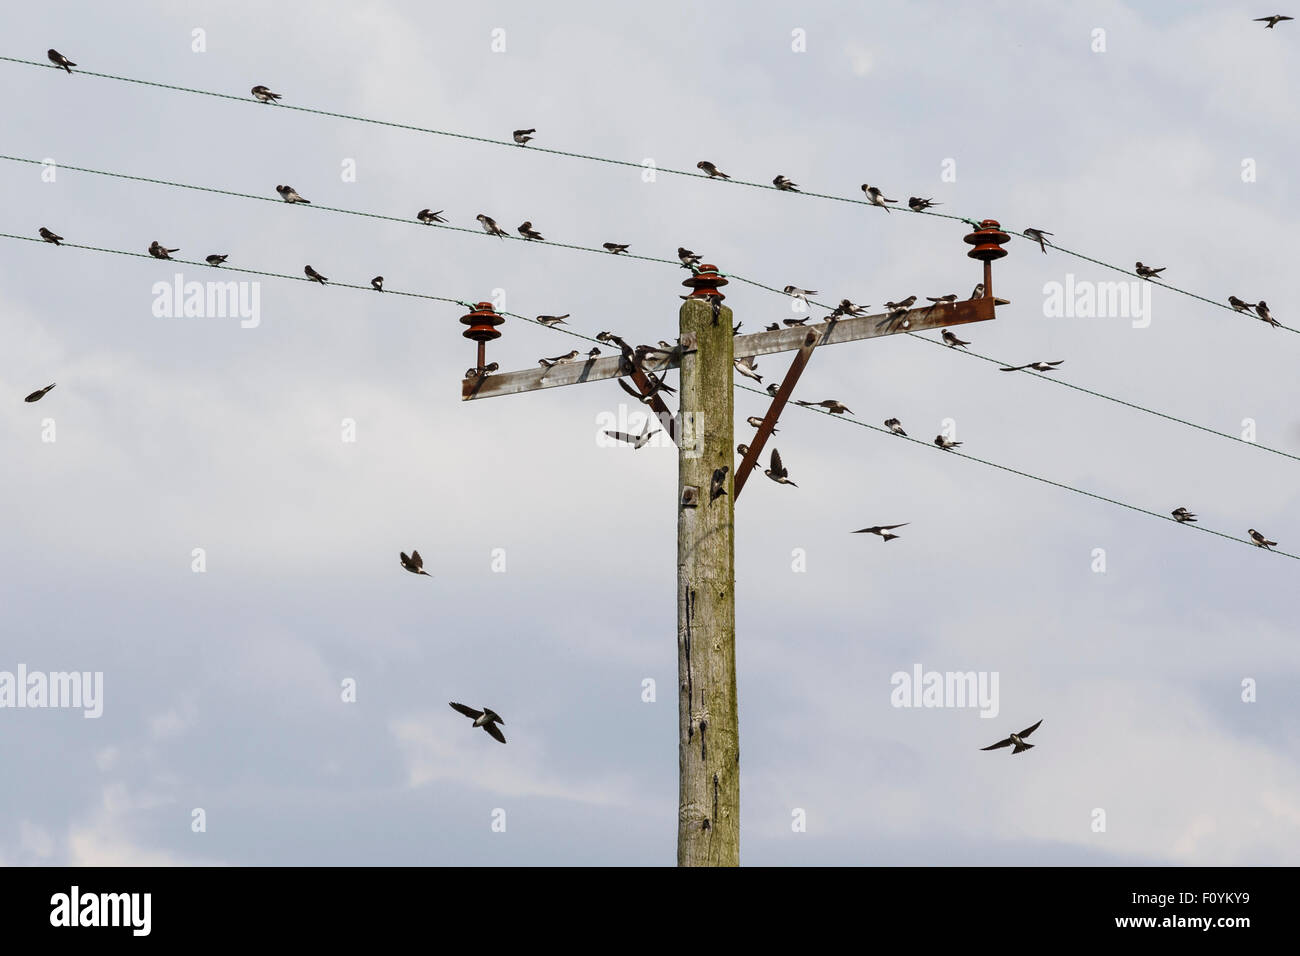 House martins gathering on electricity poles, in preparation for migration. Stock Photo